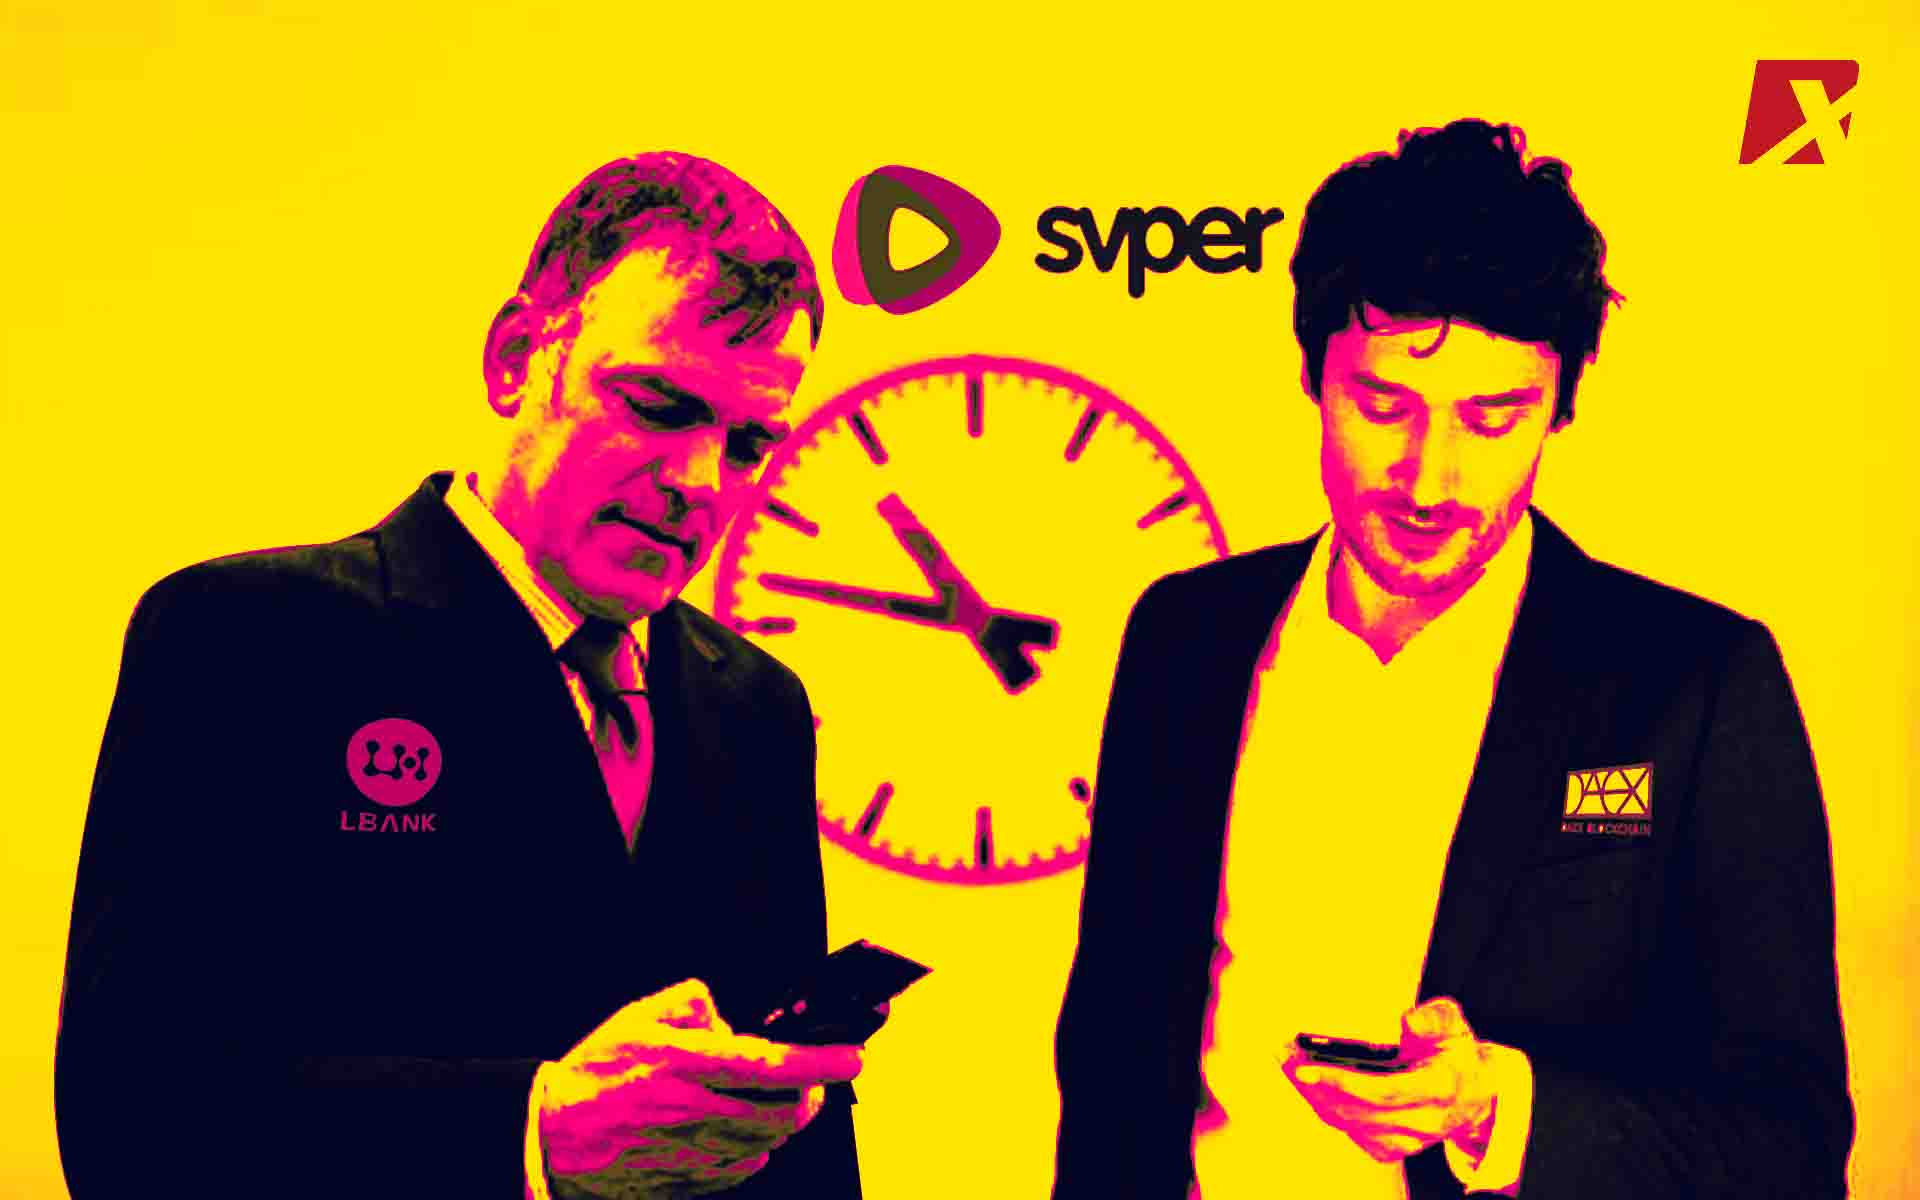 DAEX And LBank Invest In Social Instant Video App SVPER